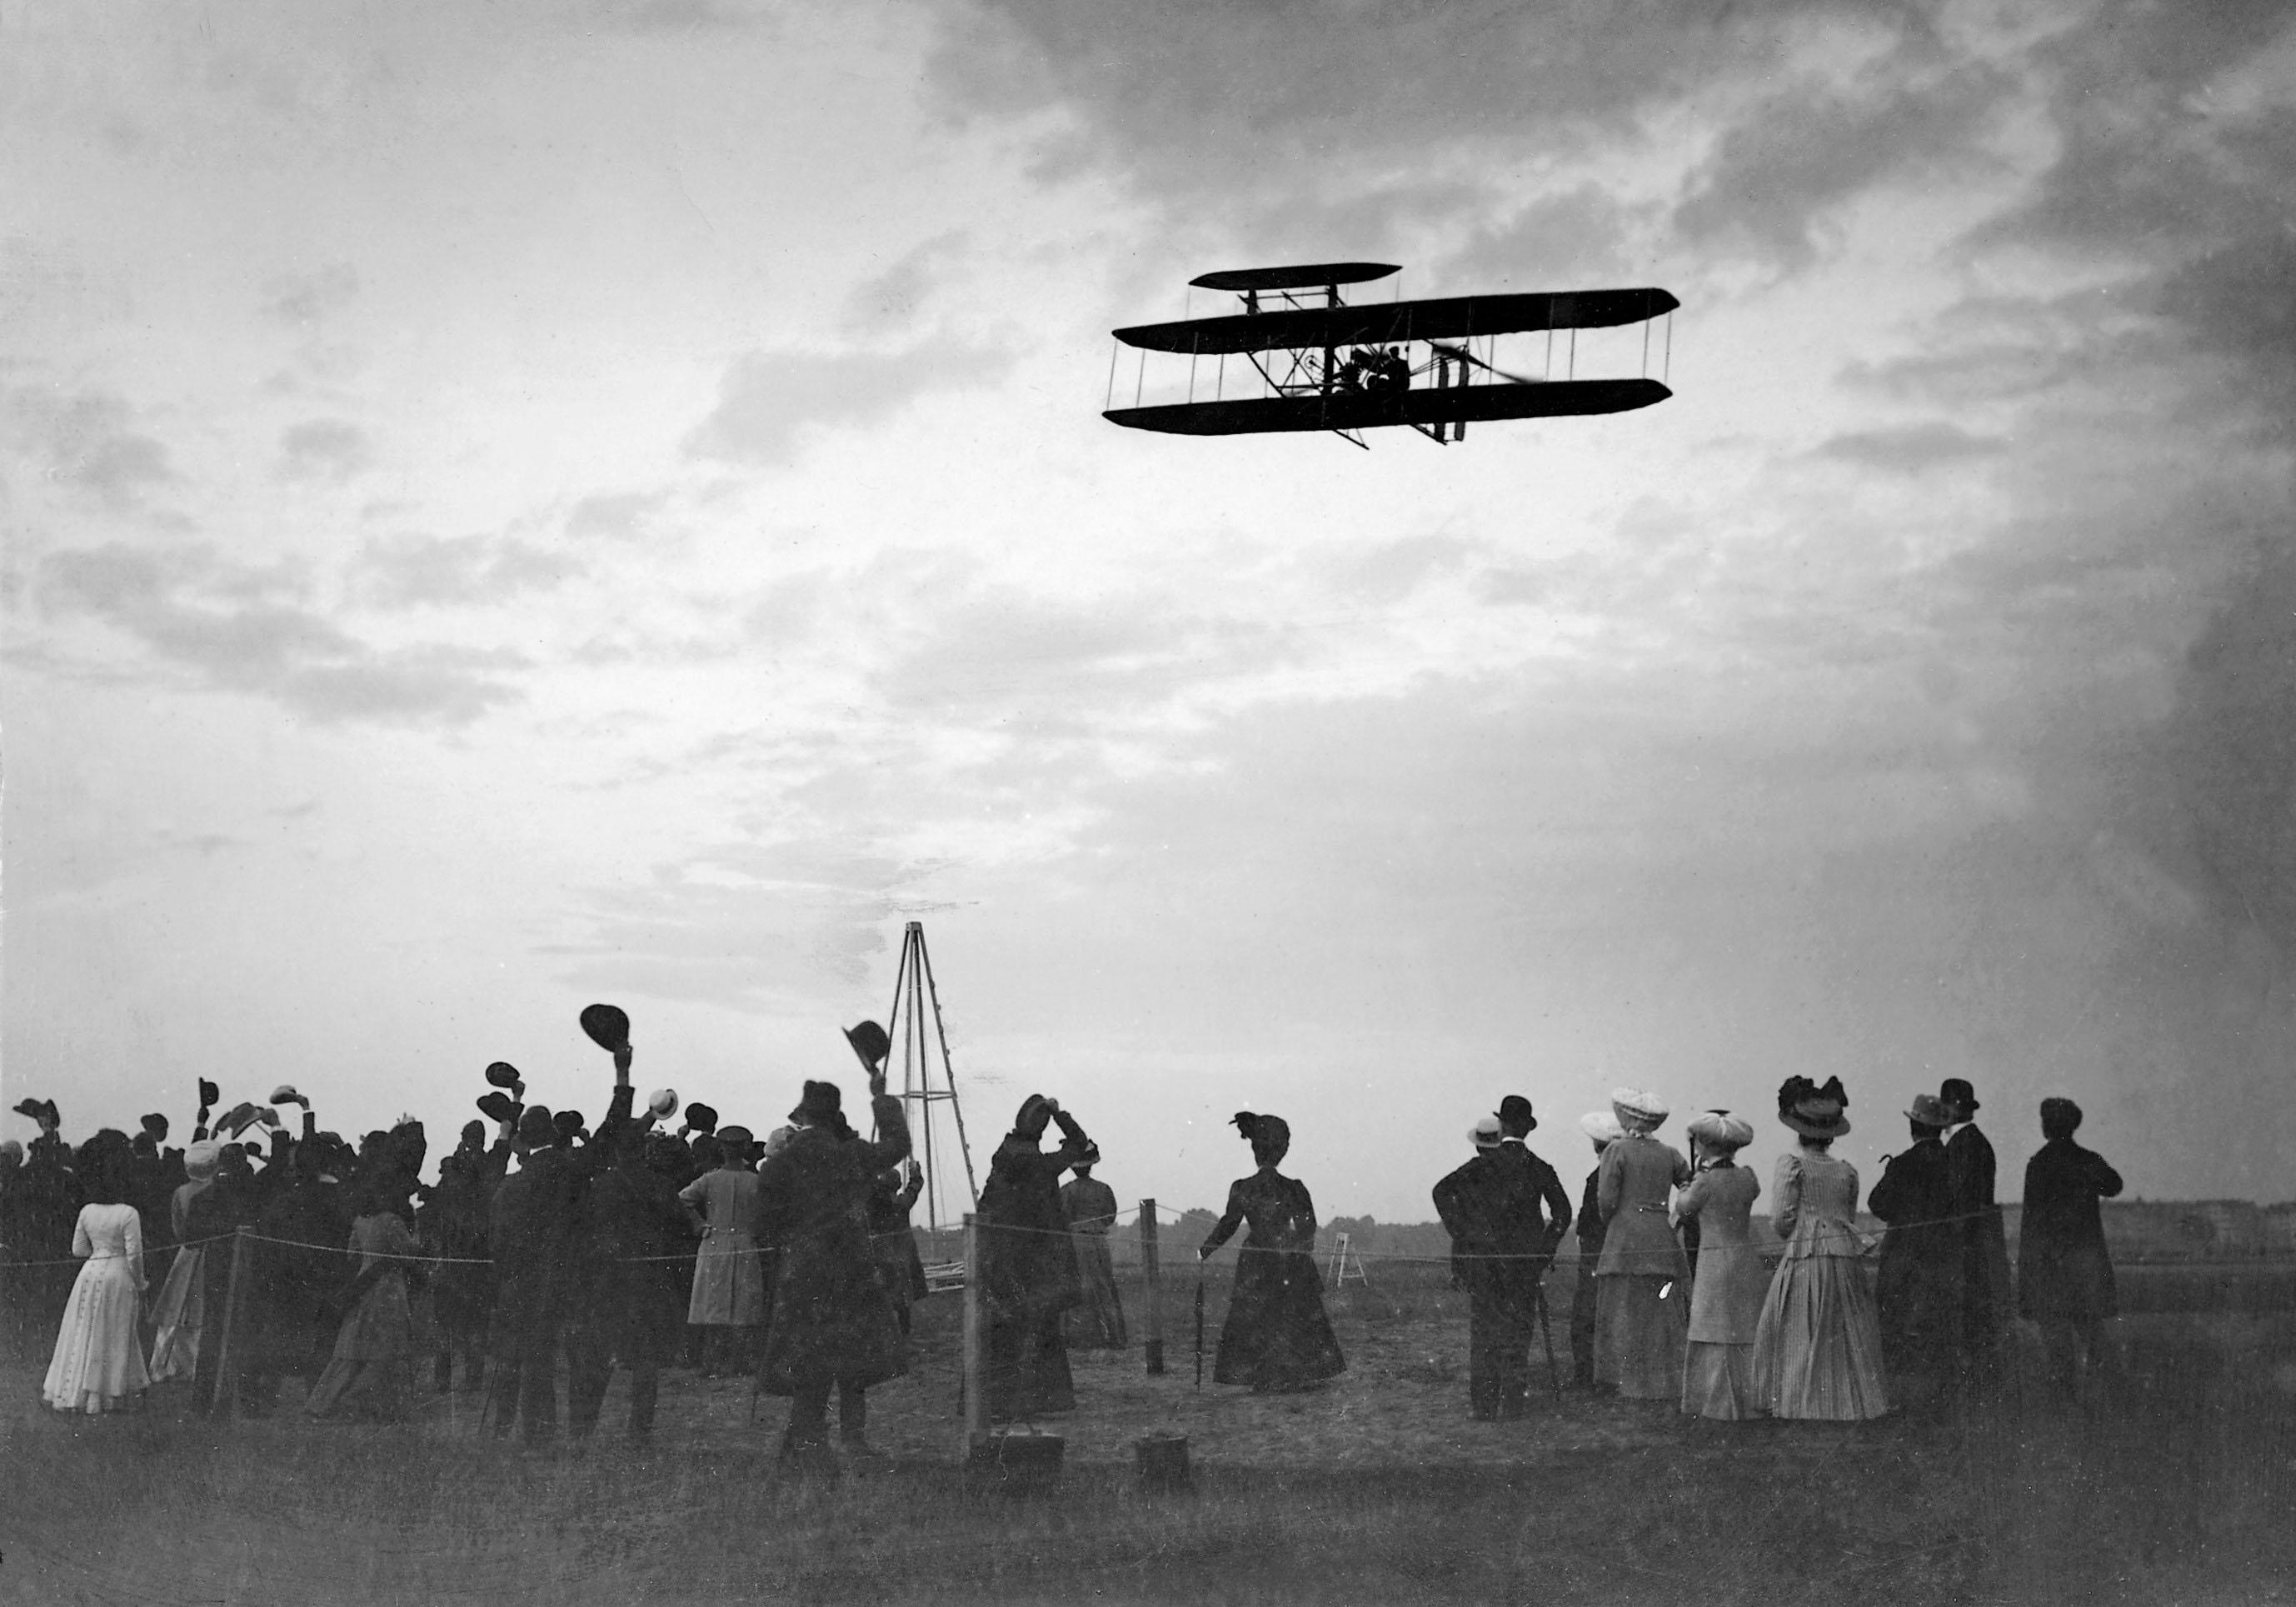 e761f4d50734 Alamy Stock Photo, Orville Wright flying in Berlin, 1909.